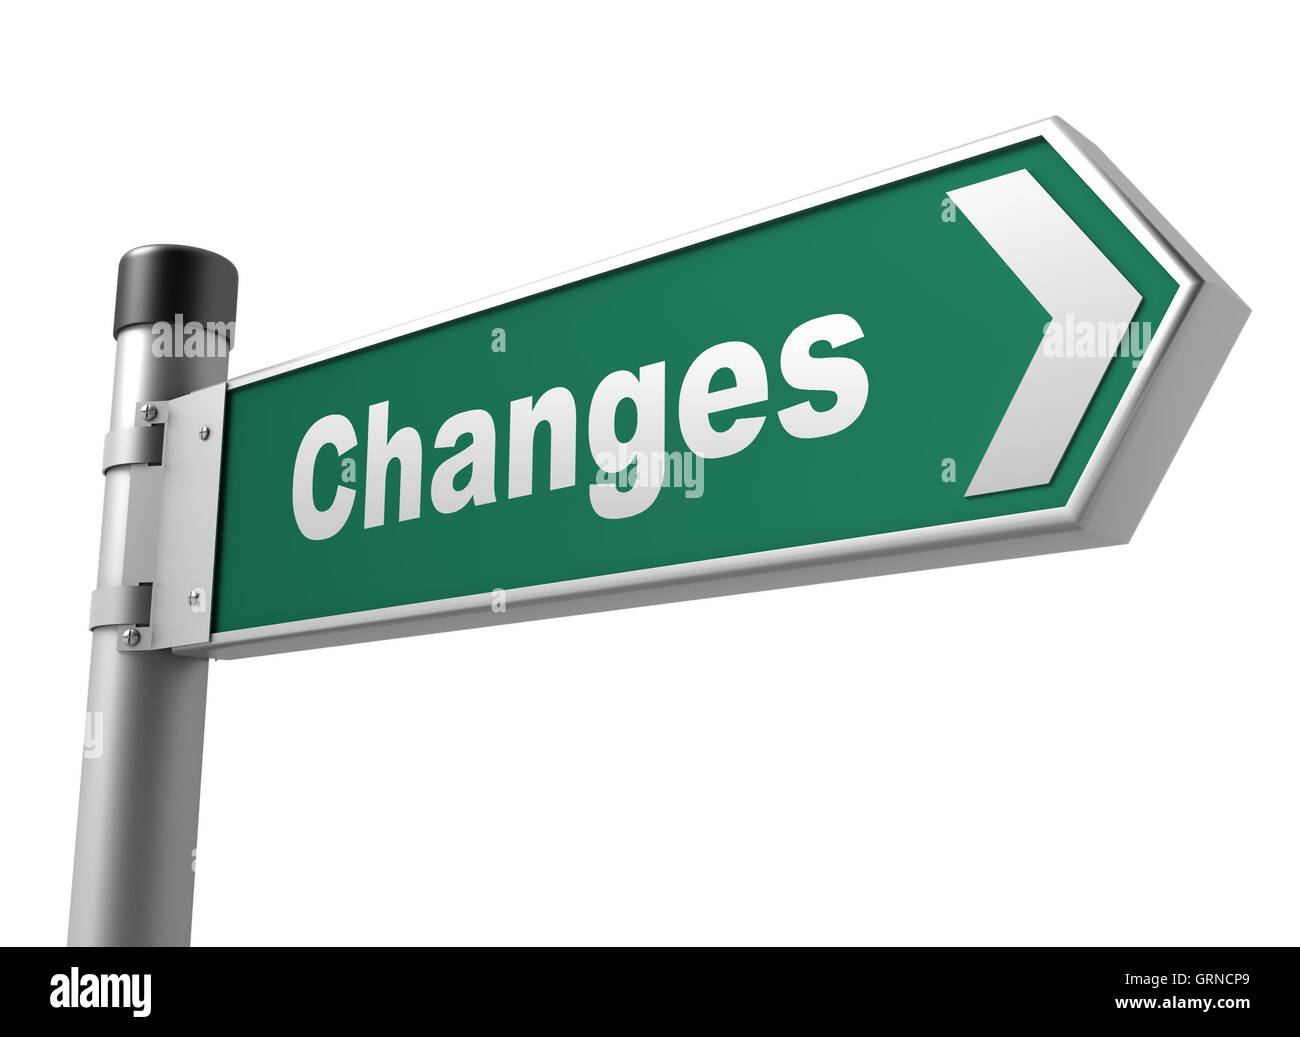 changes road sign - Stock Image